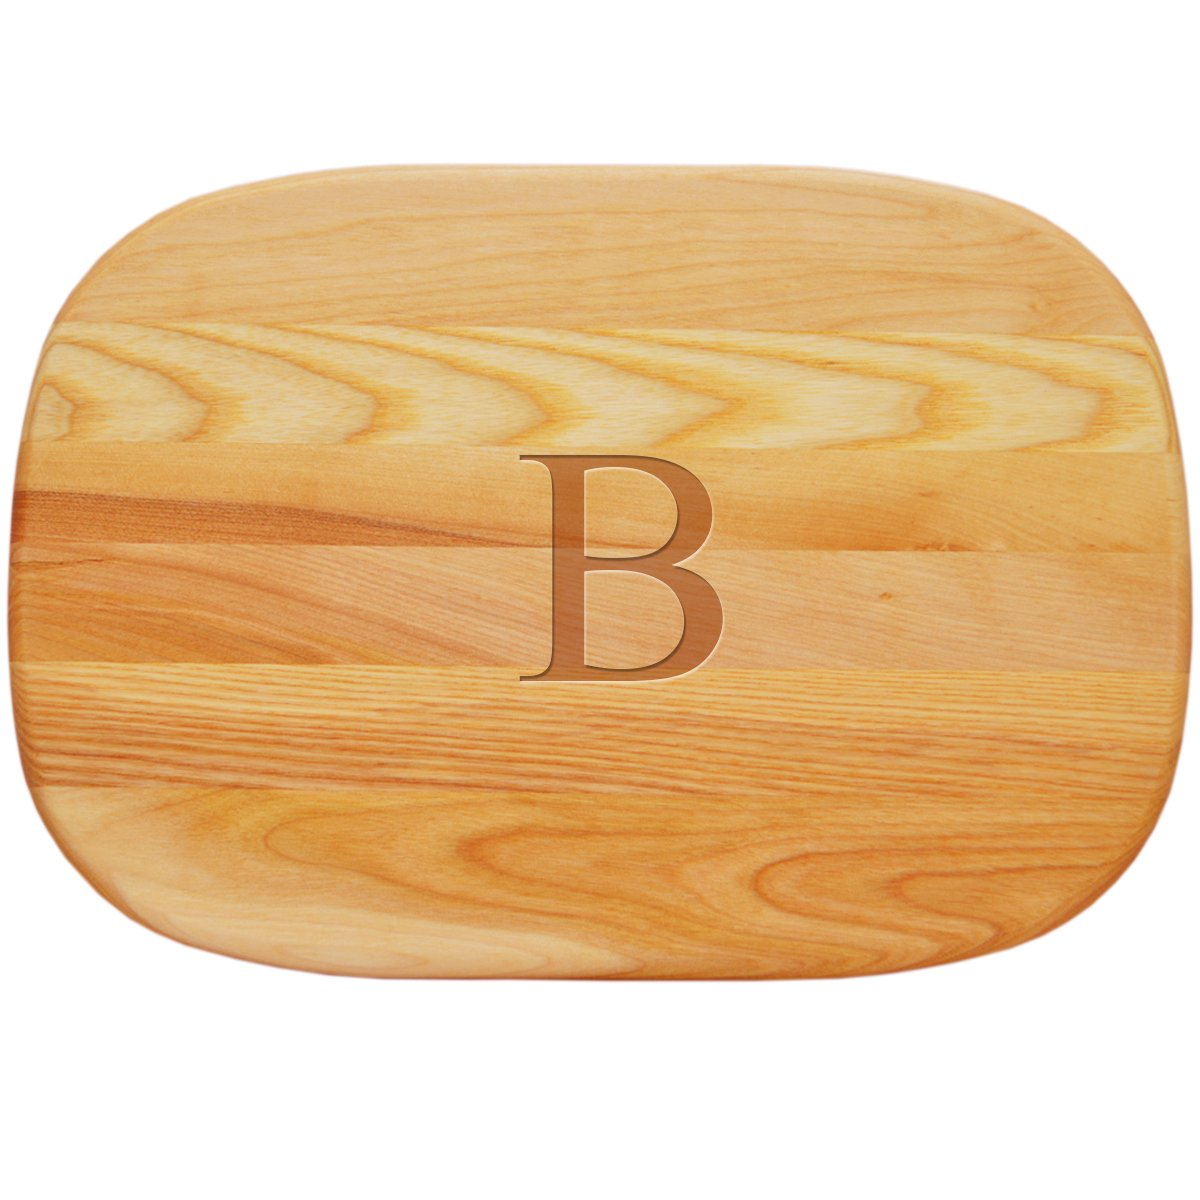 Carved Solutions 735255447279  Medium Everyday Board with Etched Times New Roman initial K.